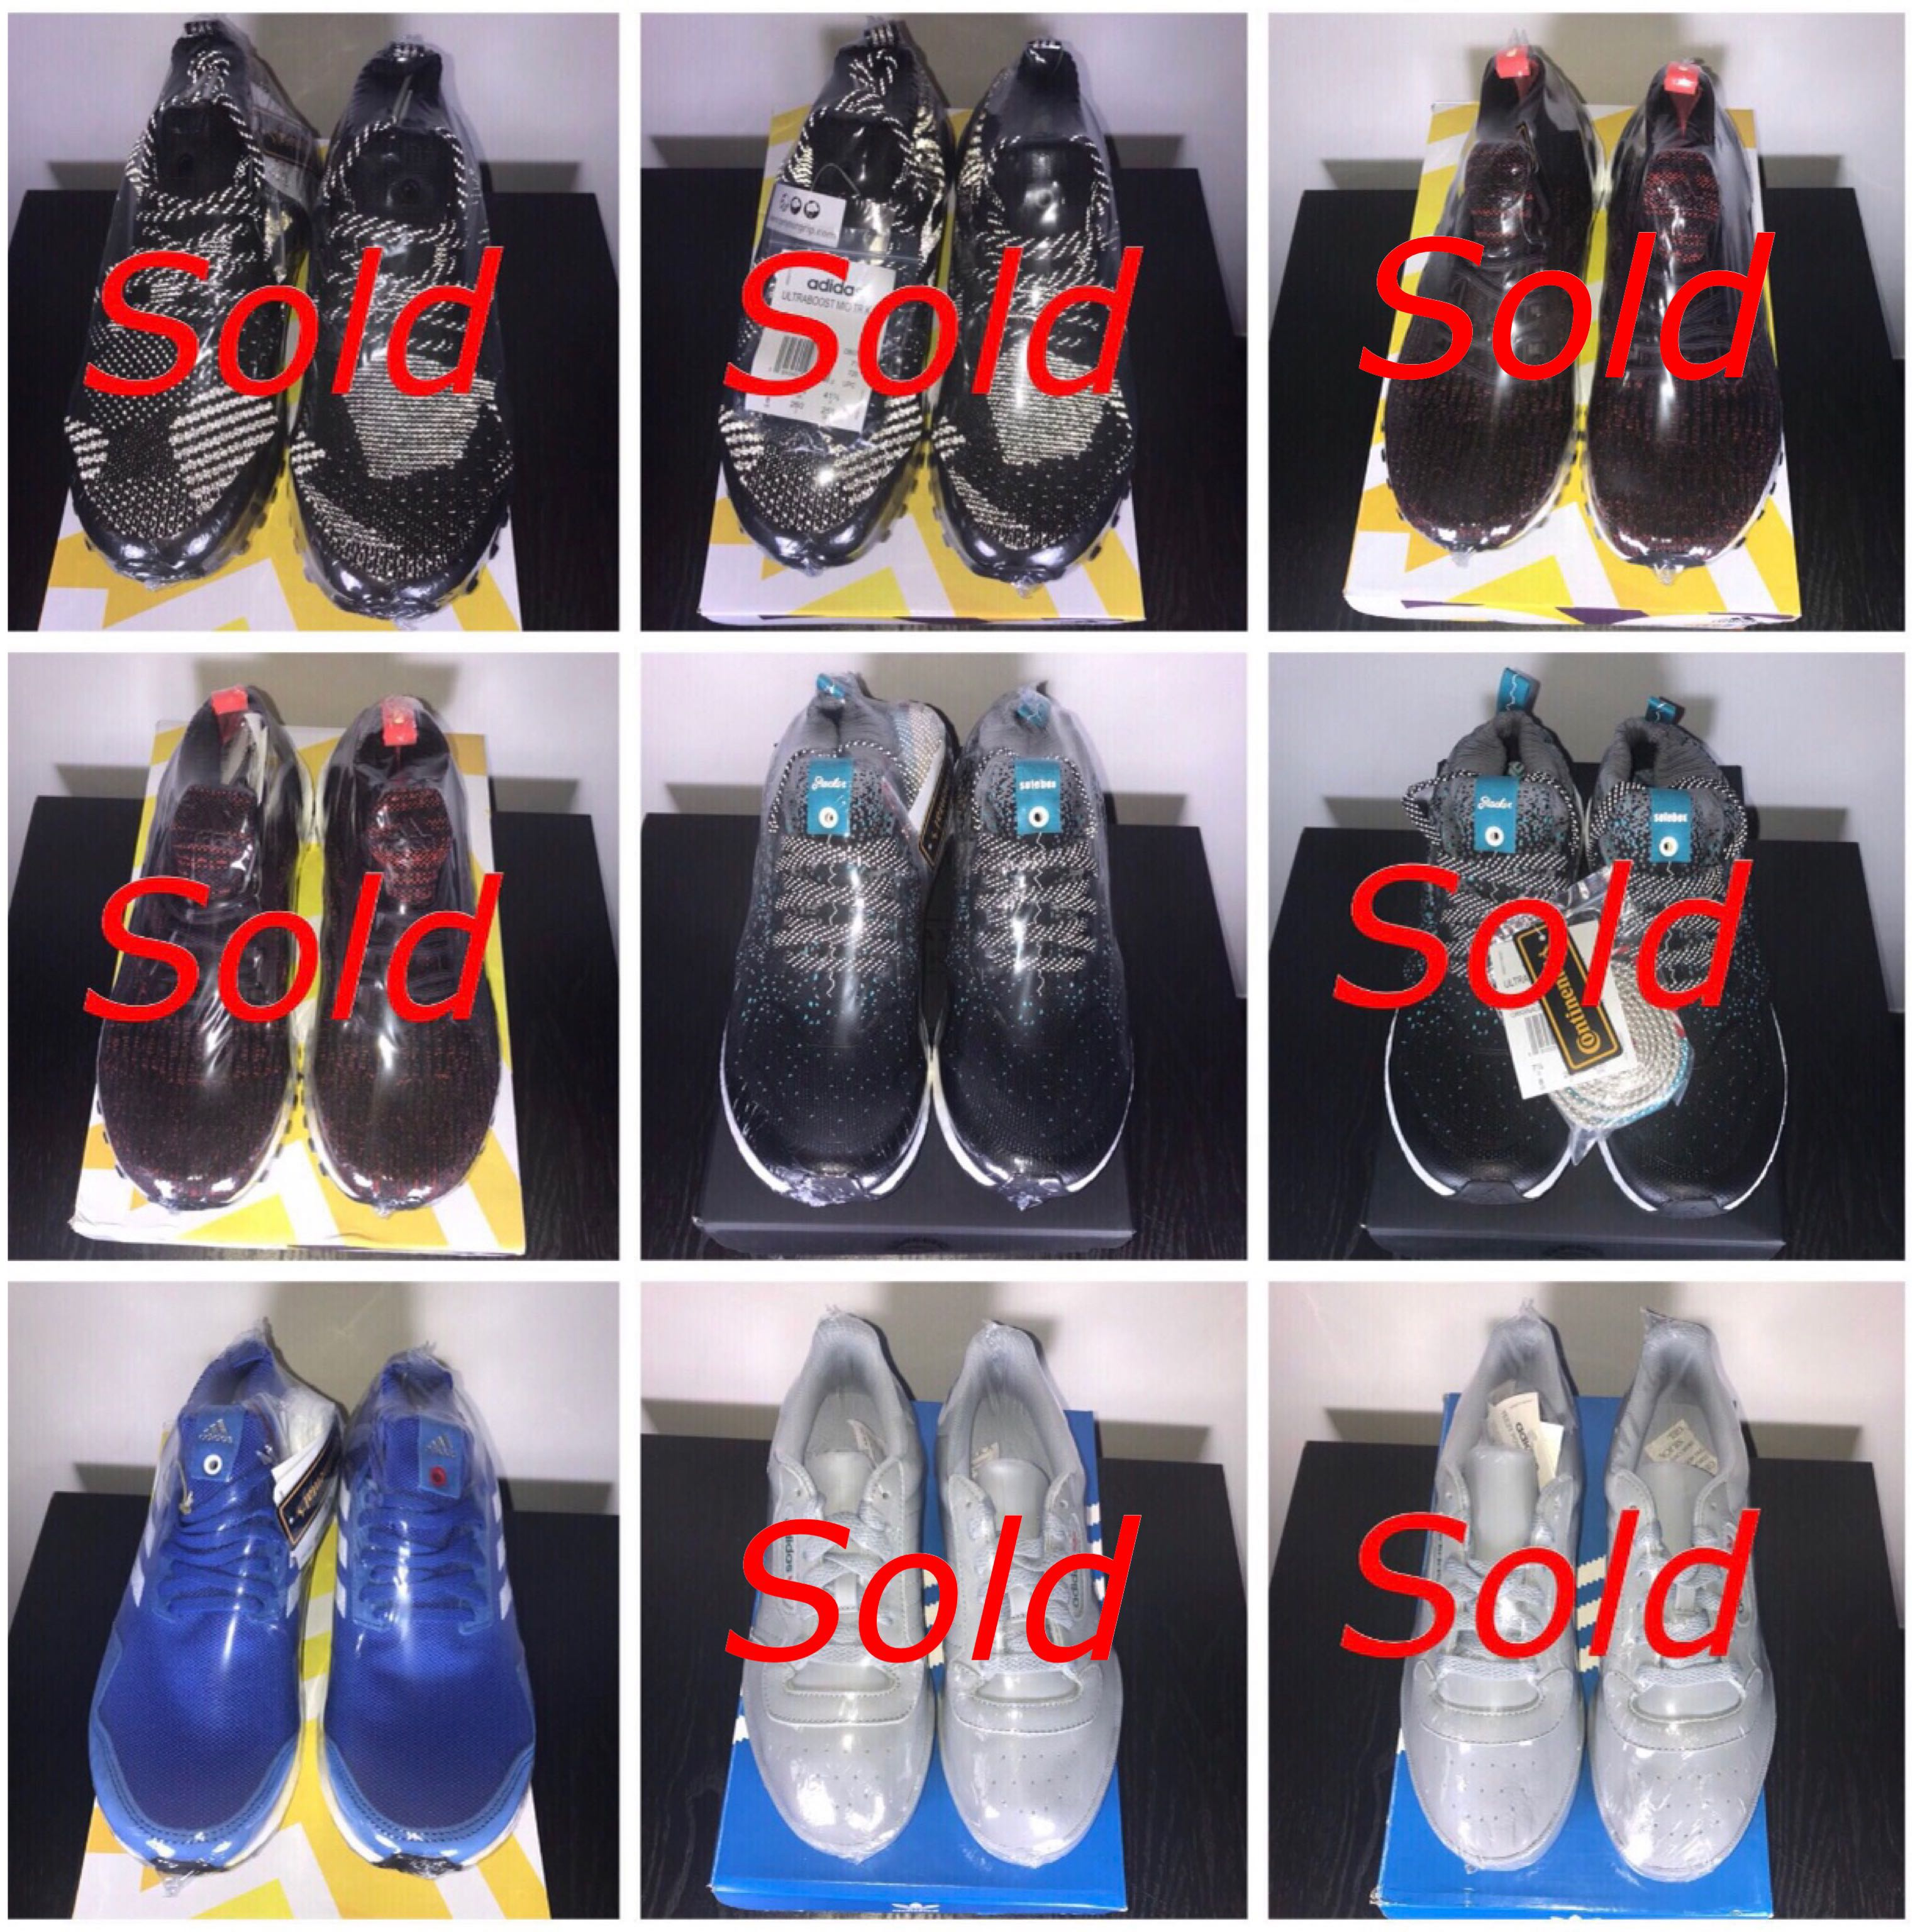 5732b3d7ef0 Adidas - Ultra Boost mid KITH x Nonnative ATR Bugundy Packer x ...